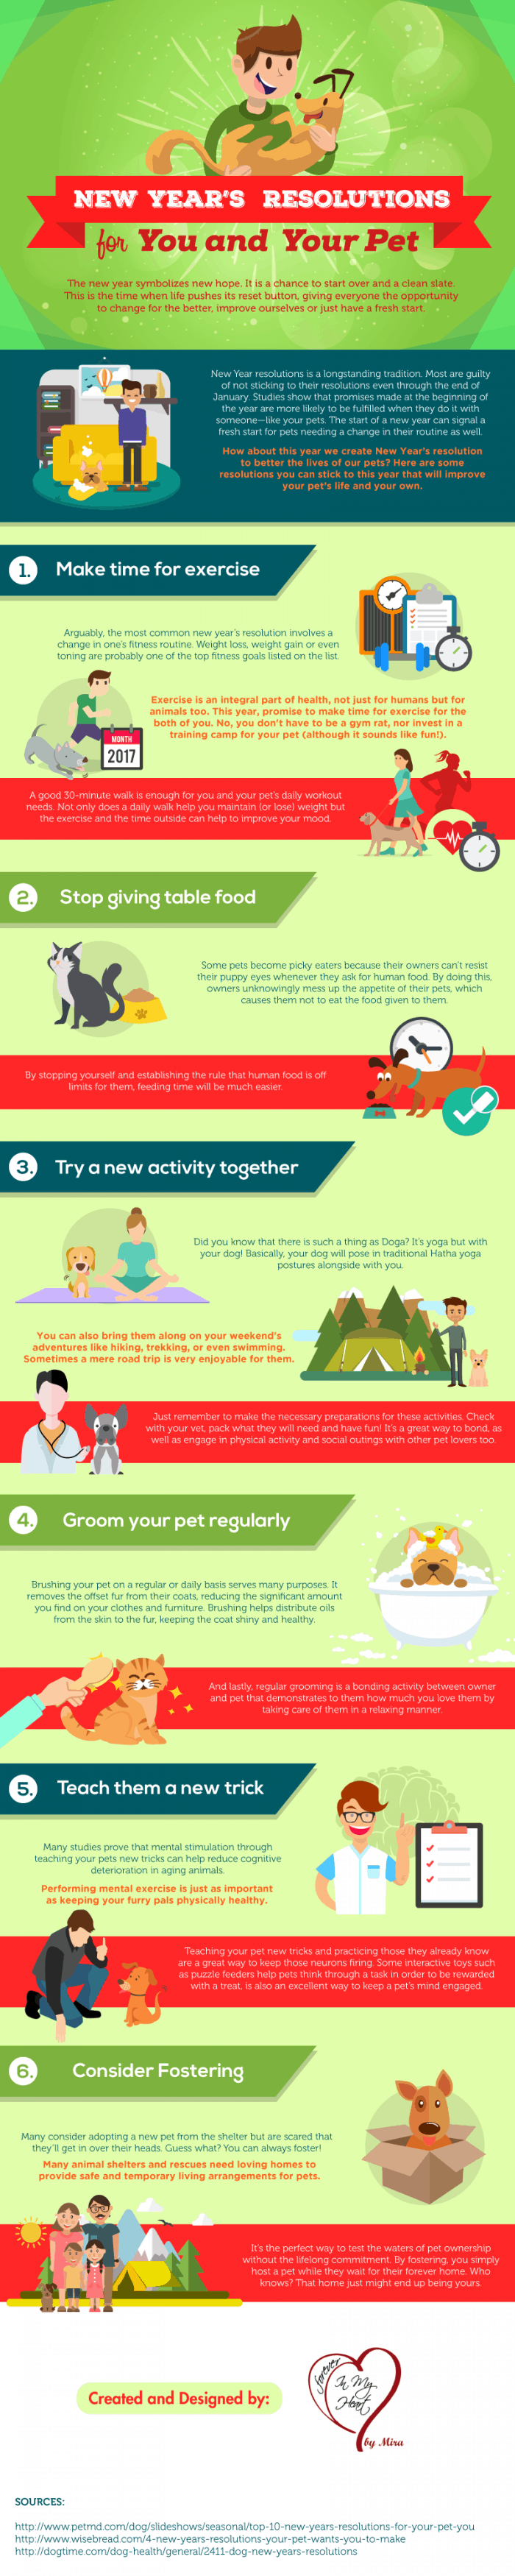 New years resolutions for you and your pet